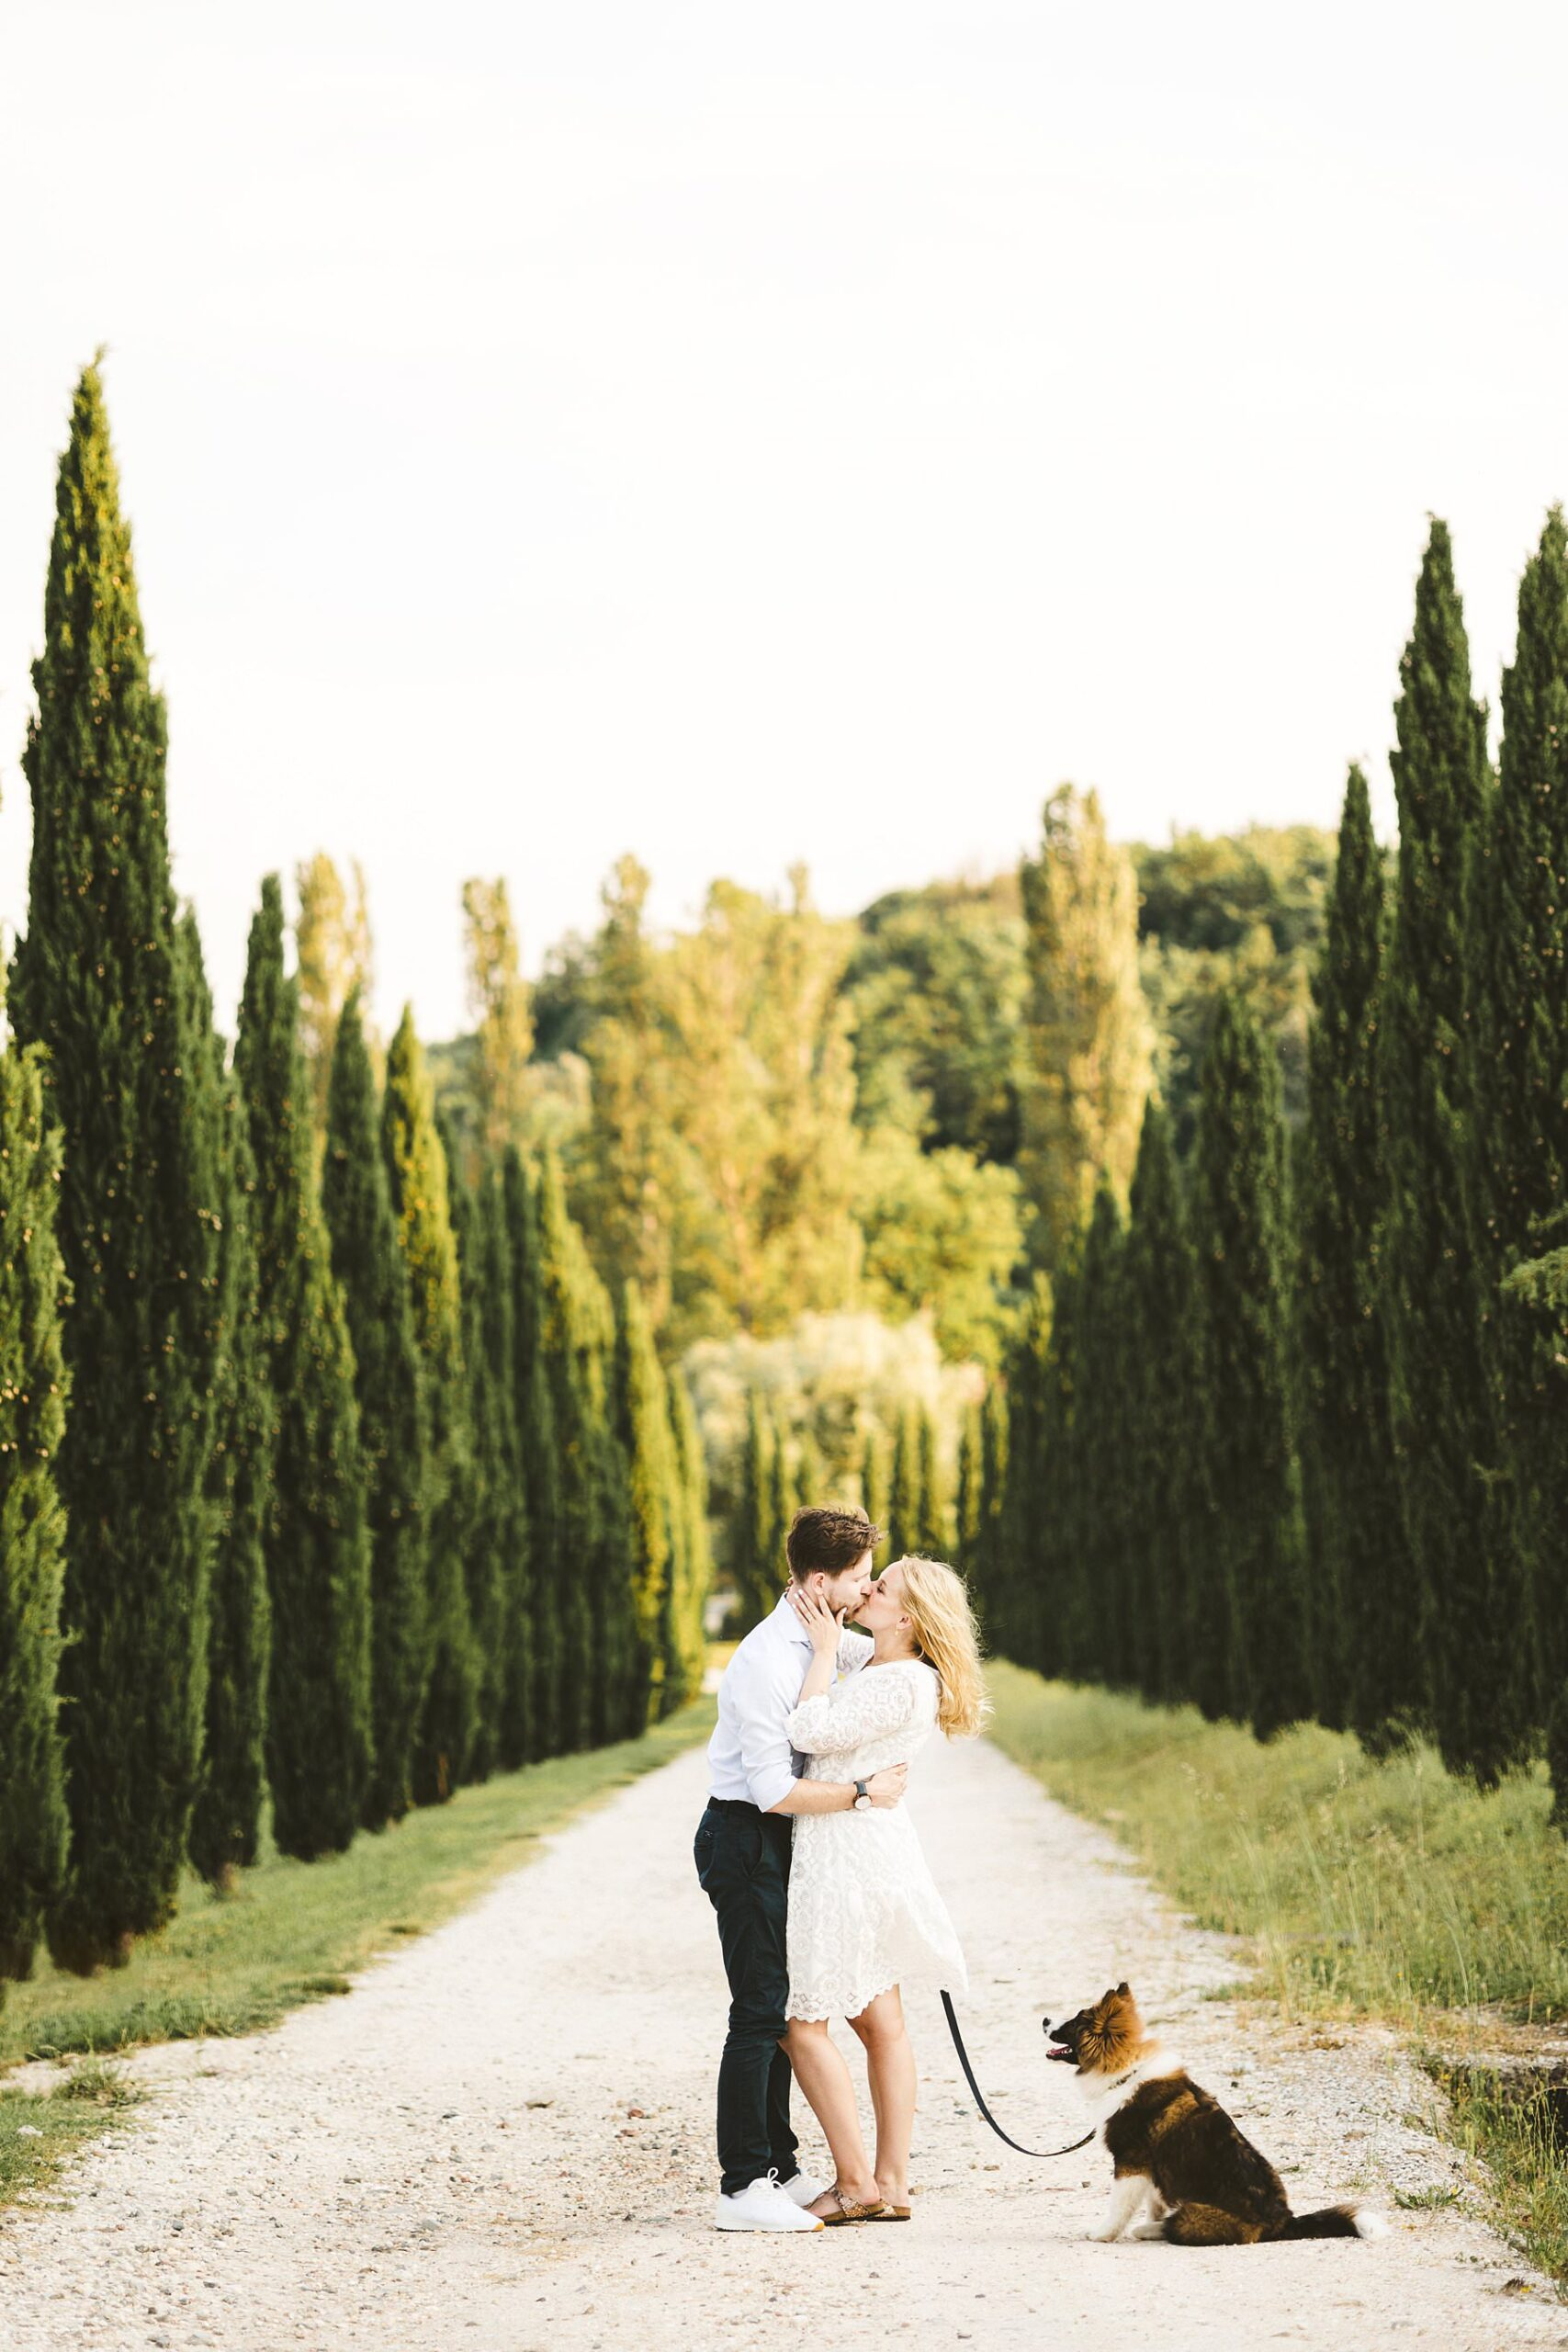 A truly unforgettable proposal photoshoot in Tuscany with evocative cypresses street at Poggio Tre Lune